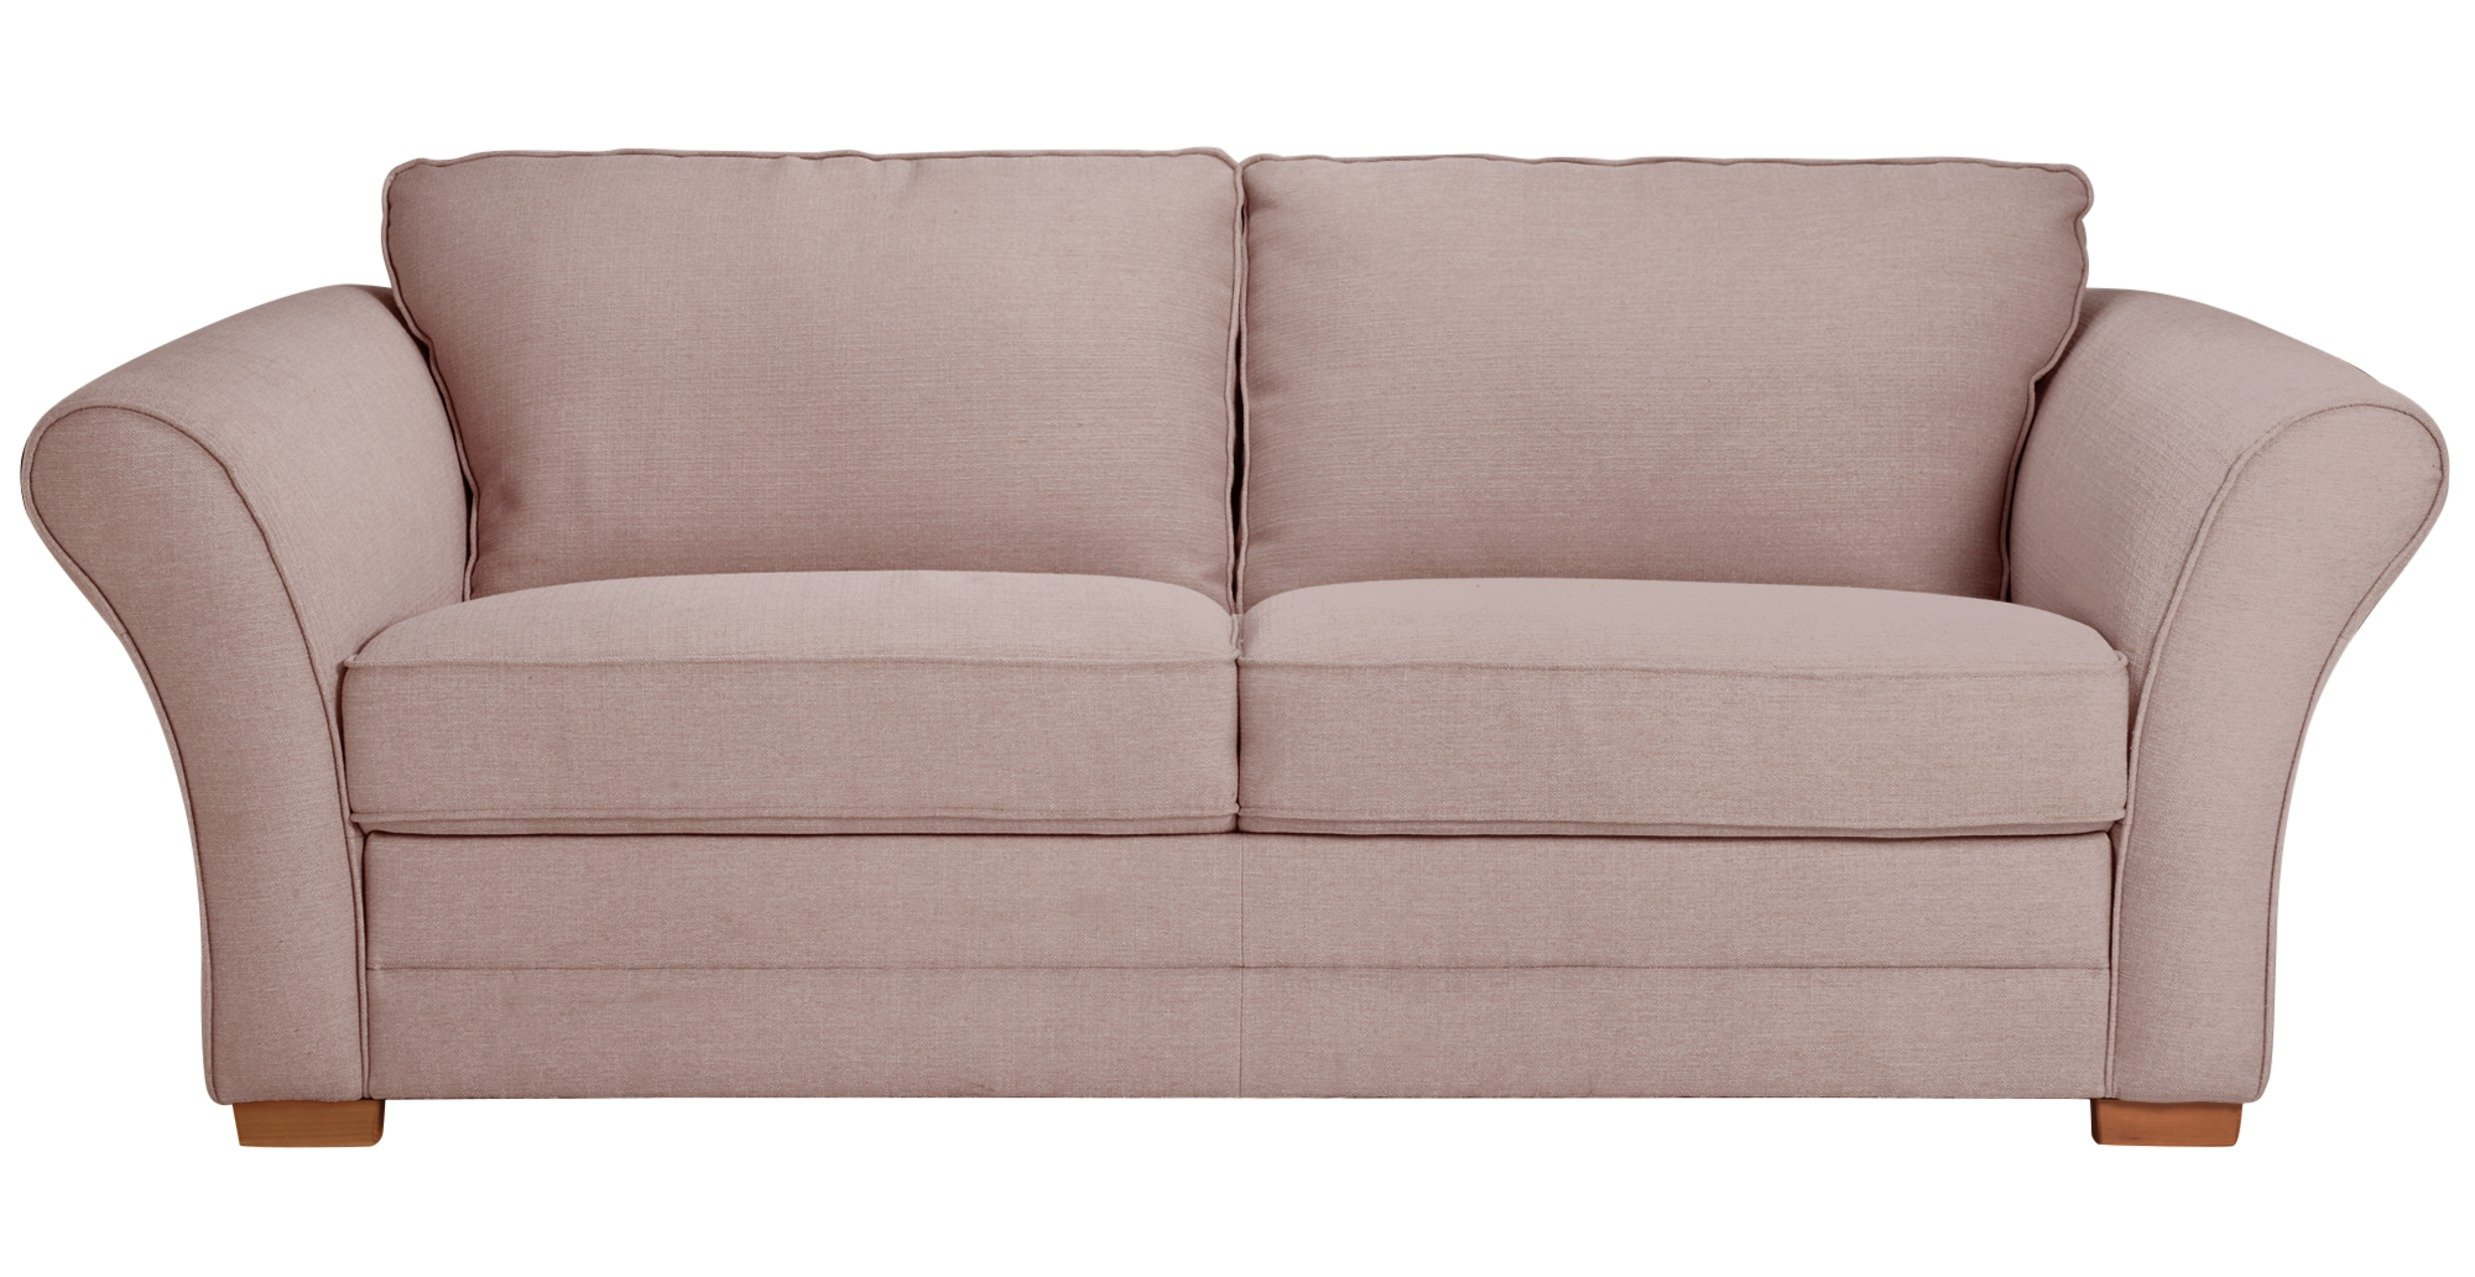 Sofa Beds  Chair Beds   Futons   Bed Settees   Argos   page 3 Argos Home Thornton 3 Seater Fabric Sofa Bed   Old Rose